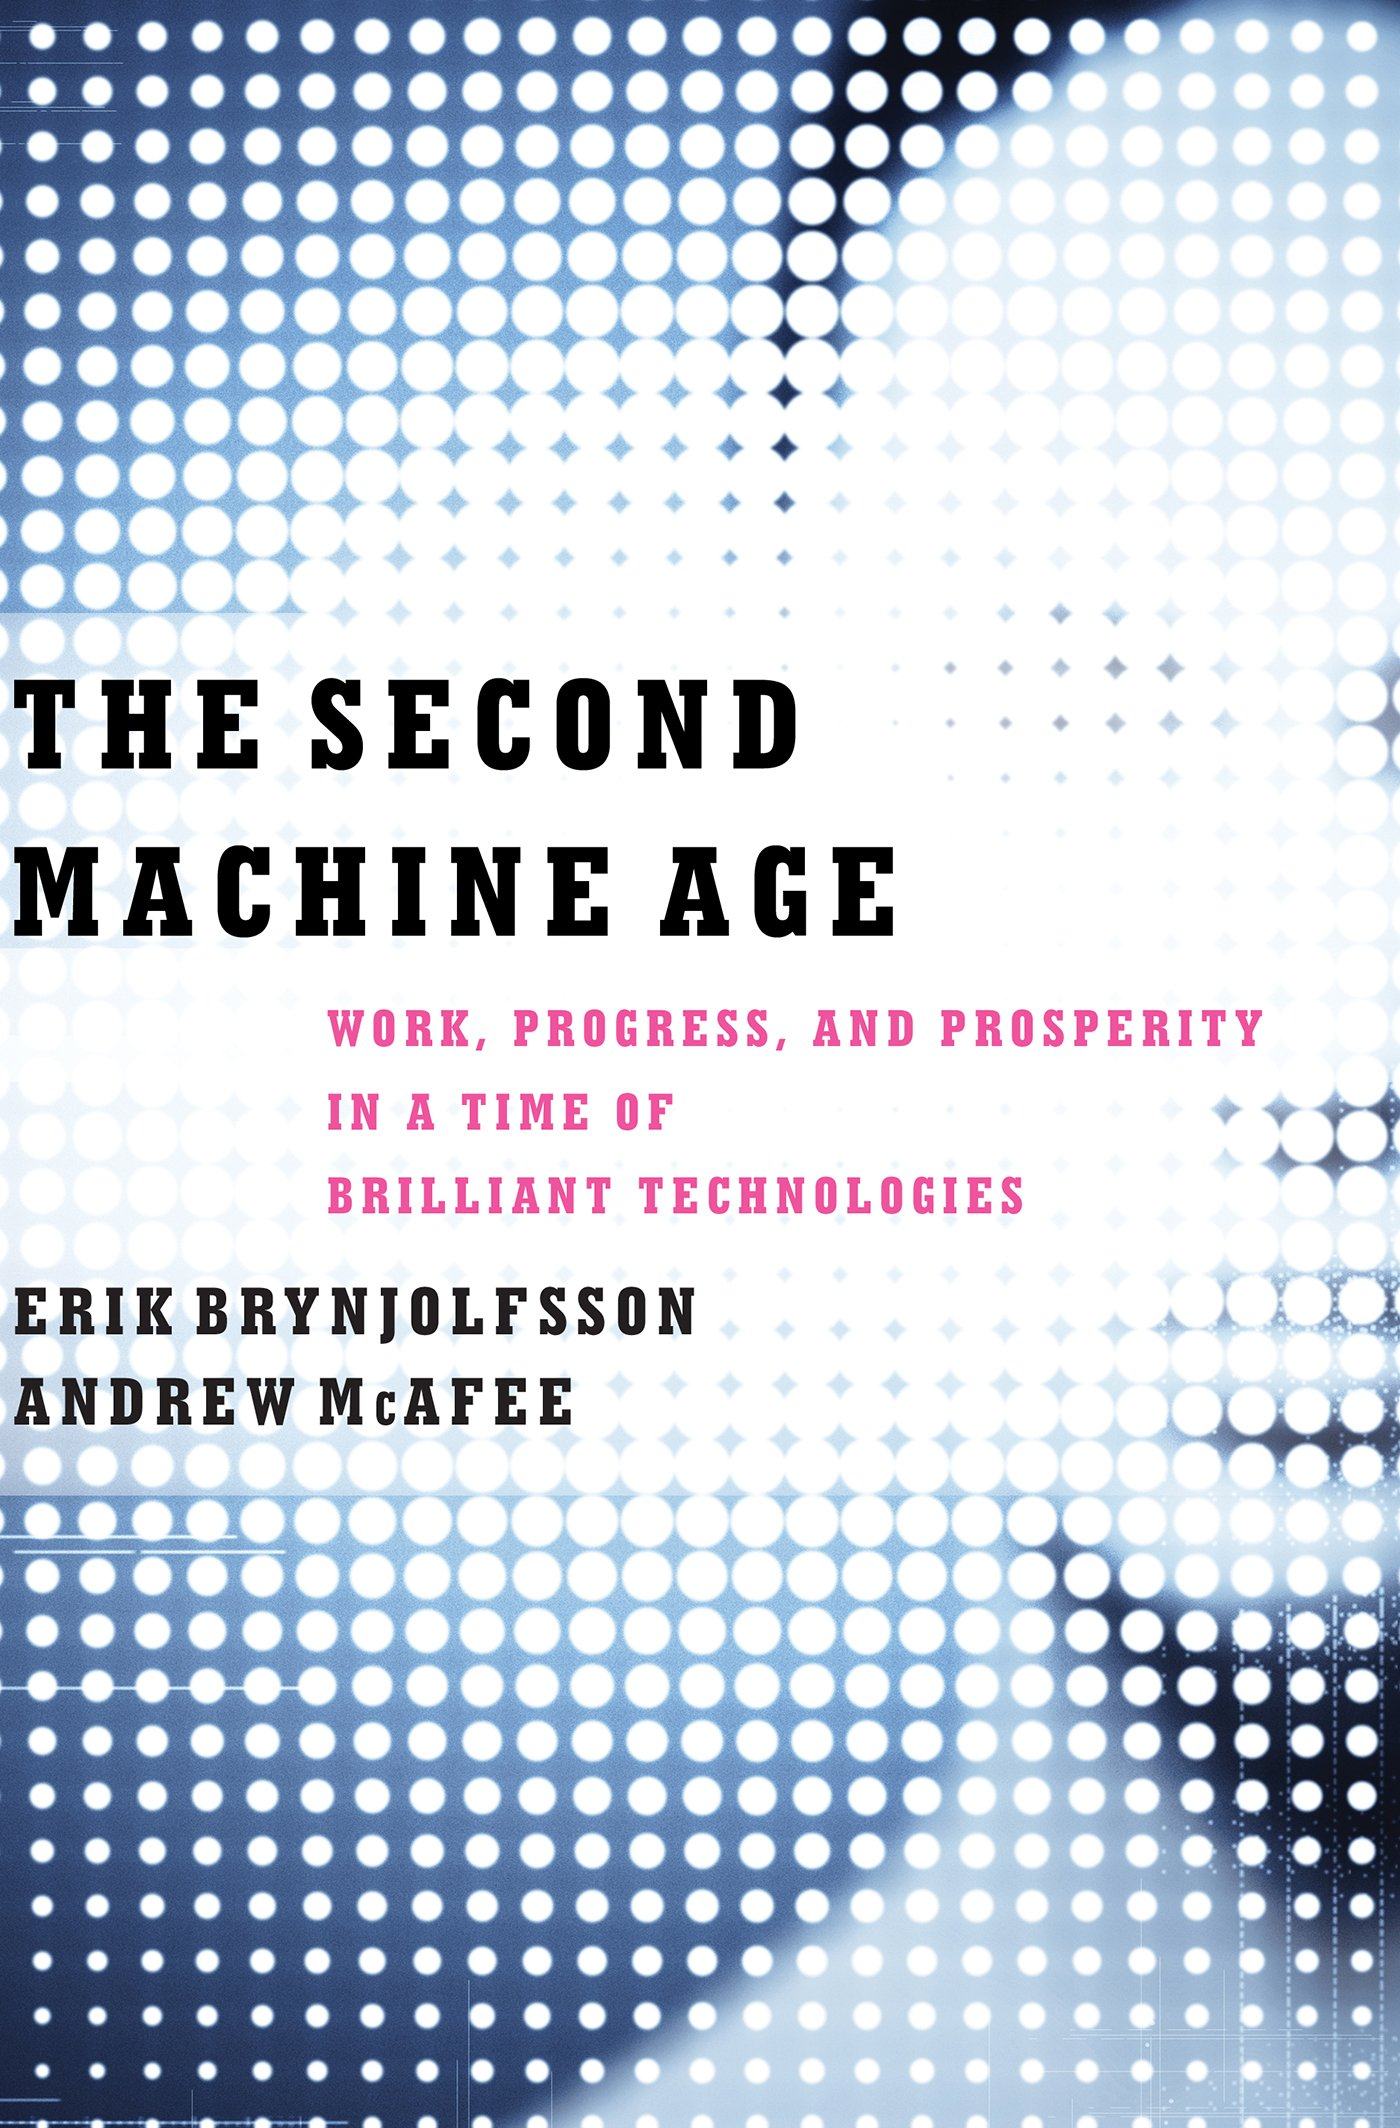 The Second Machine Age: Work, Progress, and Prosperity in a Time of Brilliant Technologies - Erik Brynjolfsson, Andrew McAfee - reviews for audiobook - reviews, quotes, summary